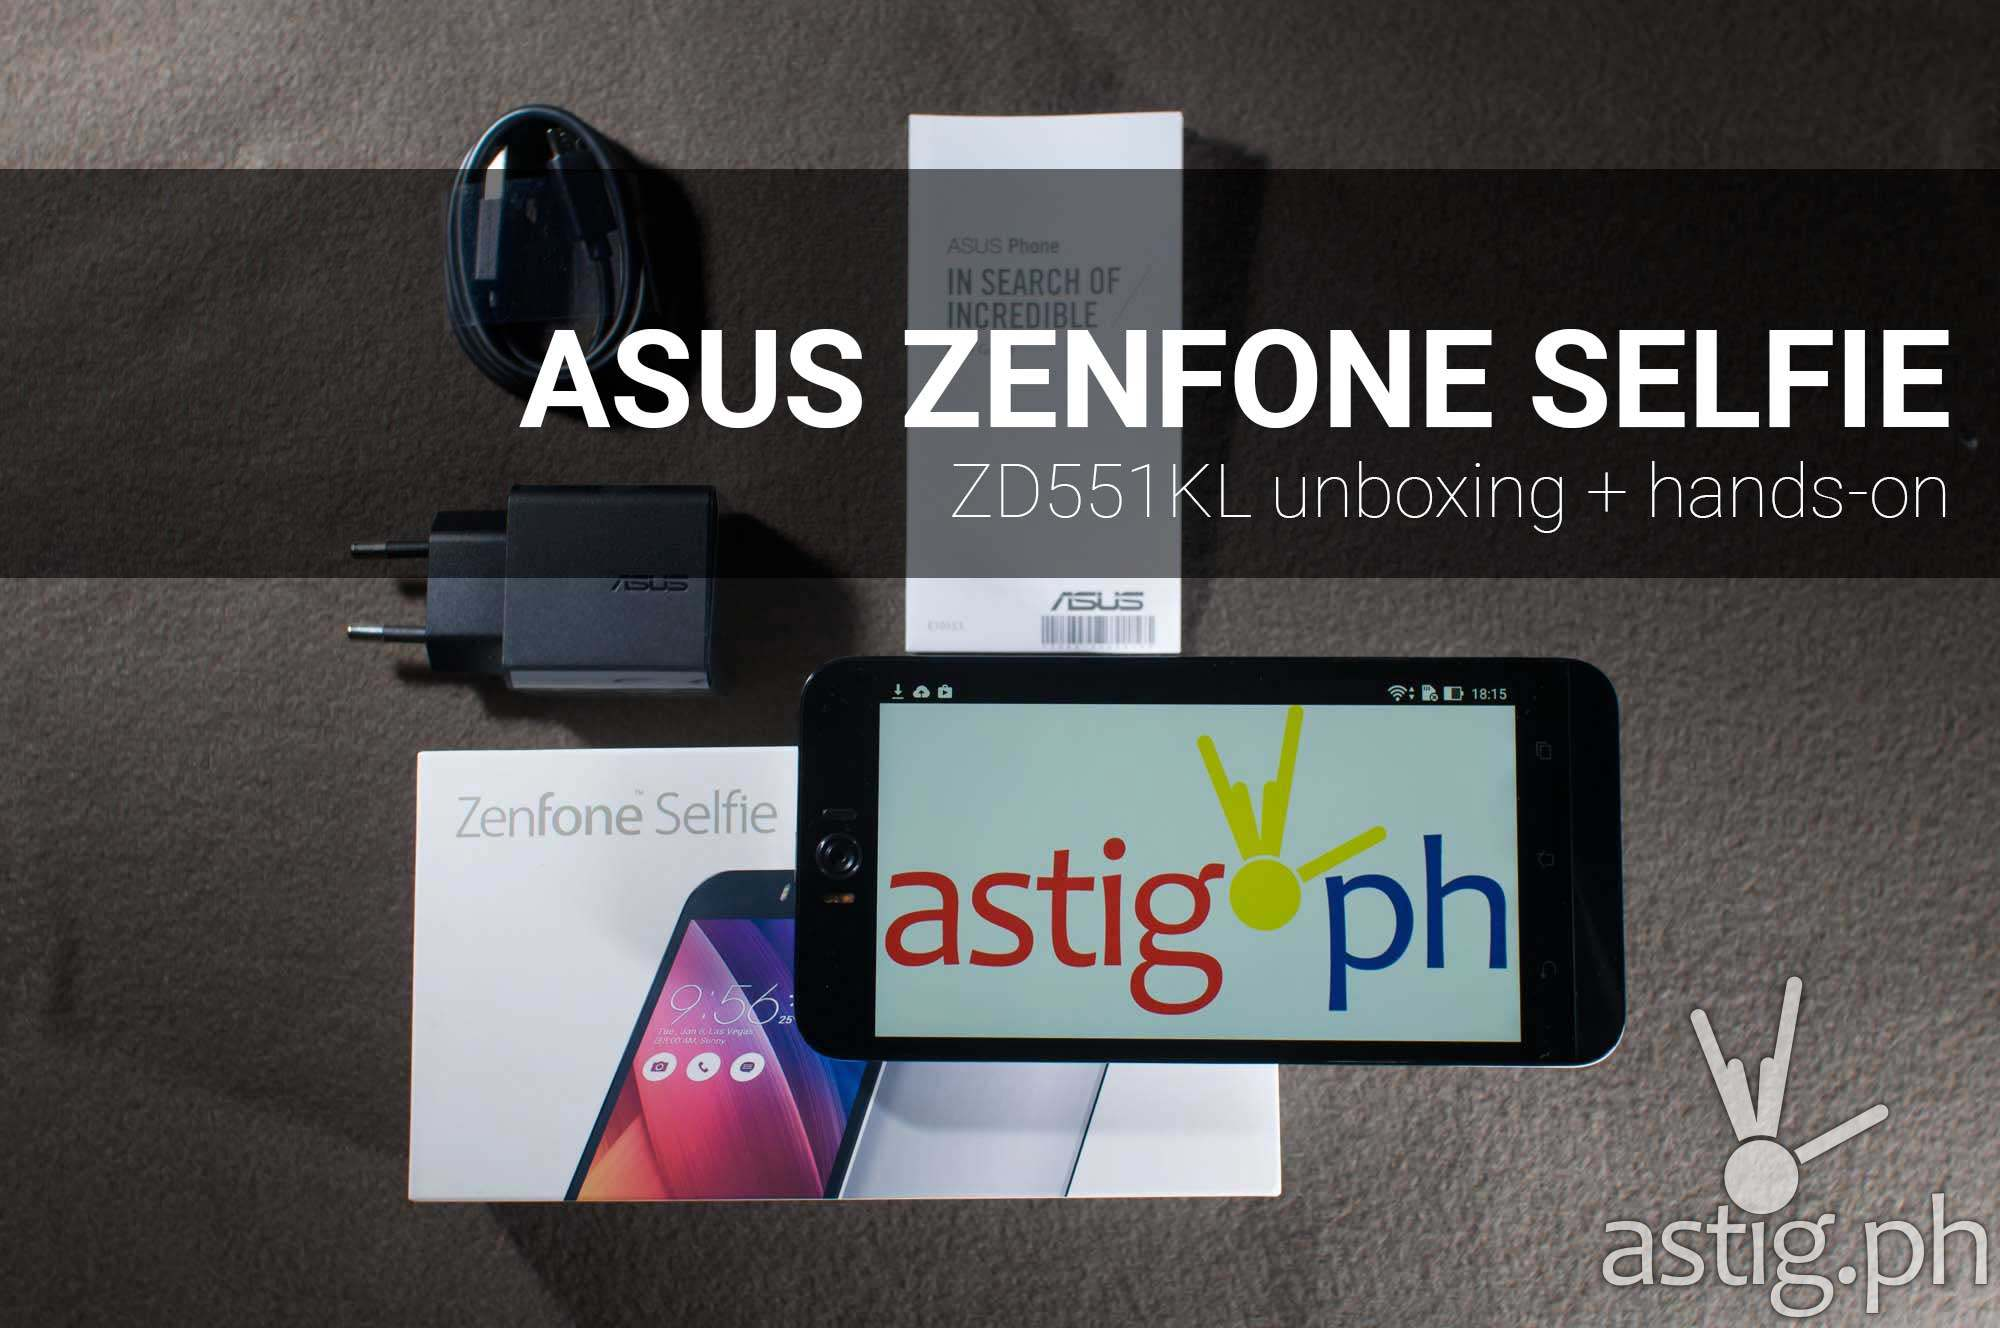 Harga Asus Zenfone Selfie Zd551kl Smartphone White 3 Gb 32 Valentino Rudy Vr112 2337s Jam Tangan Wanita Silver Black Unboxing First Impressions Preview Video